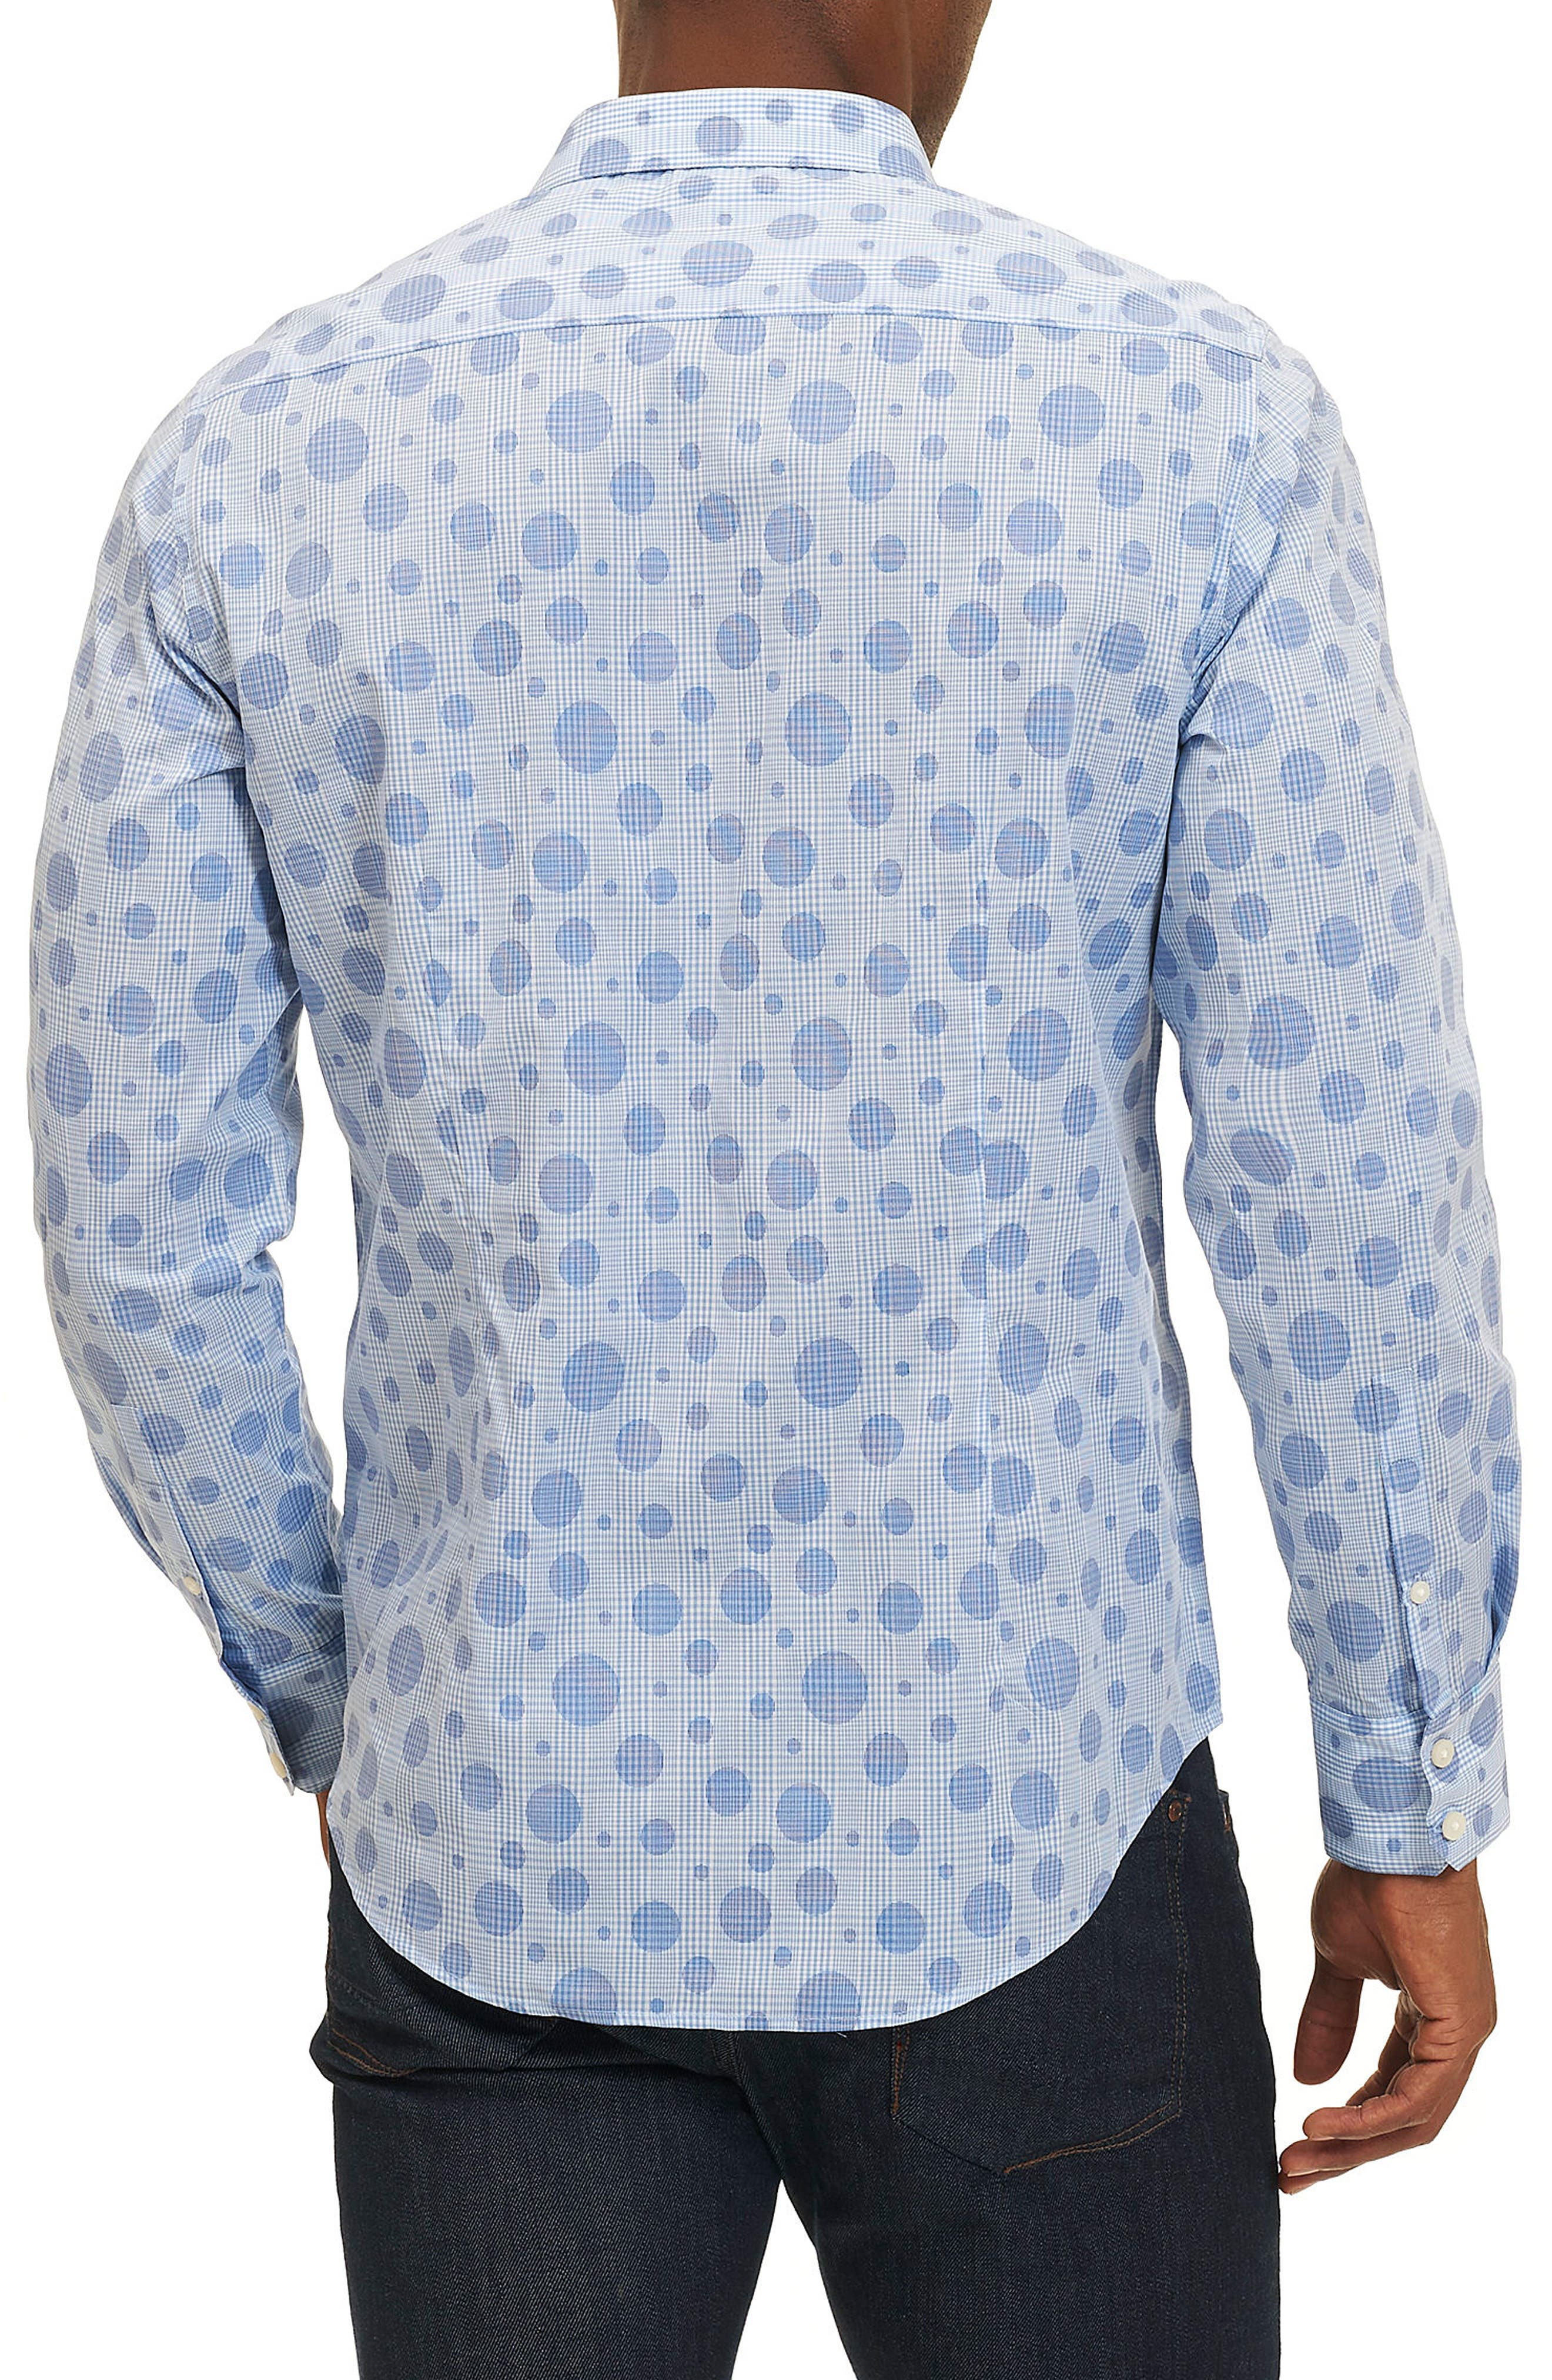 Phillip Print Sport Shirt,                             Alternate thumbnail 2, color,                             400